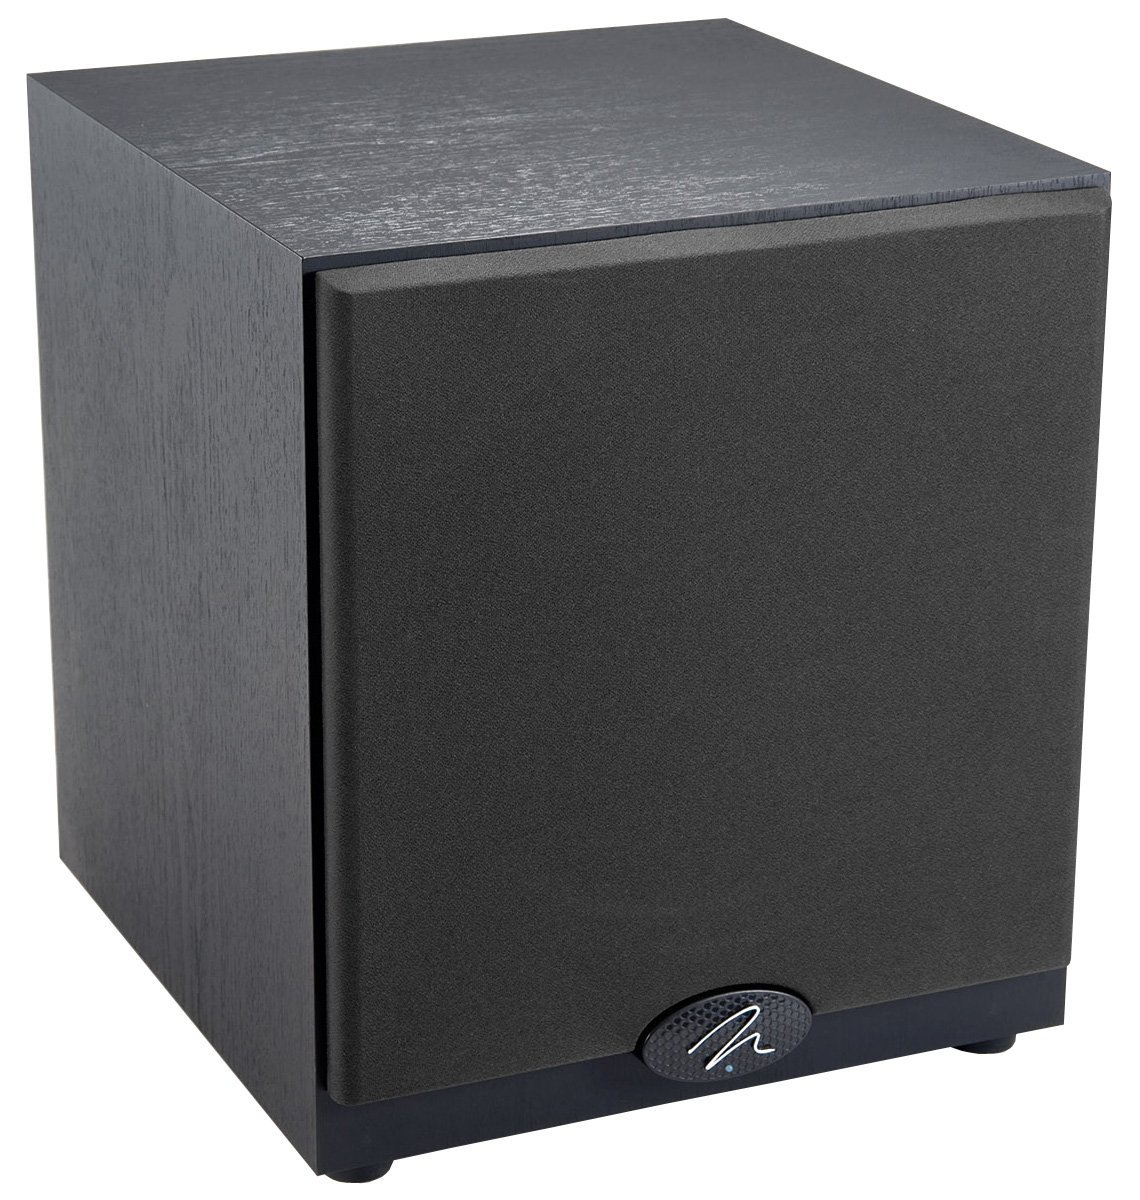 MartinLogan DYN500D Dynamo 500 Subwoofer (Black) (Renewed)